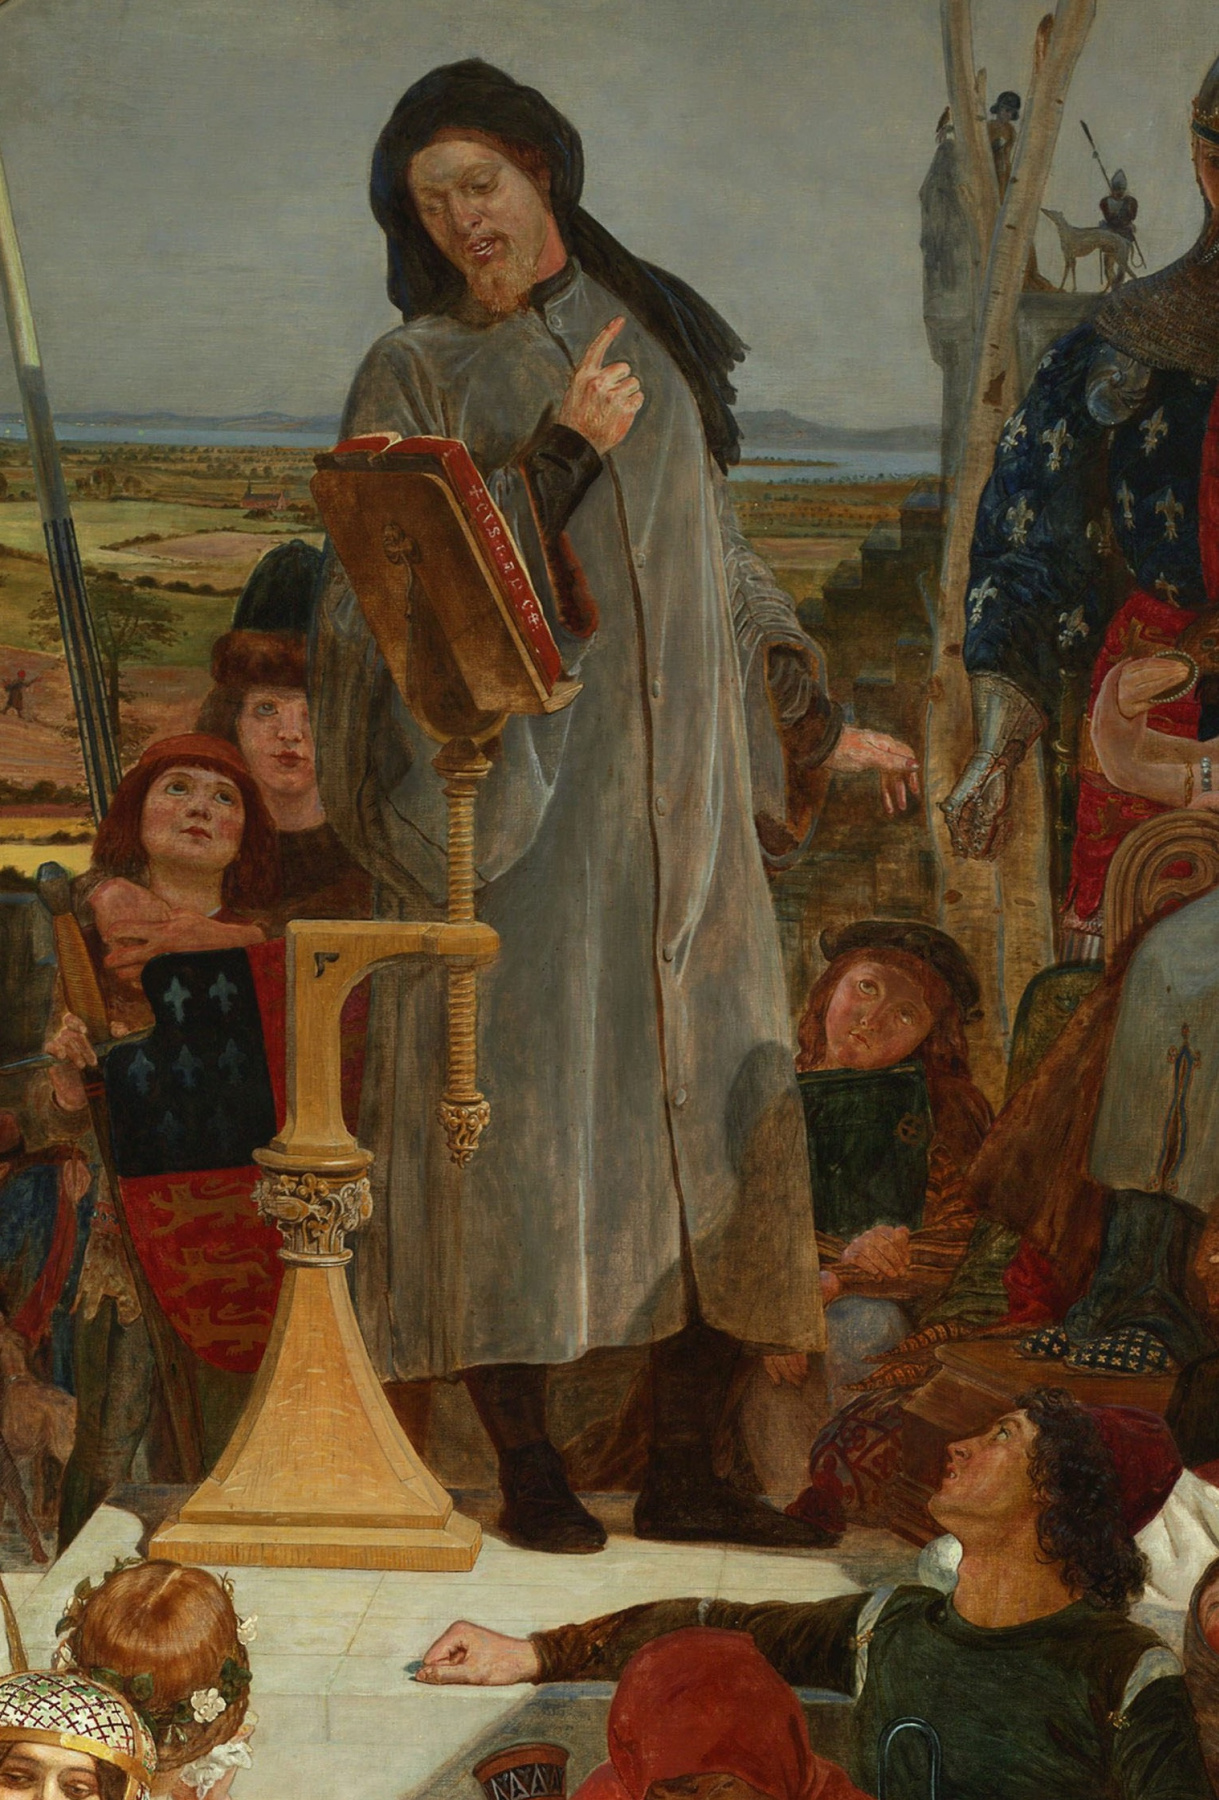 Ford Madox Brown. Geoffrey Chaucer at court of Edward III. Fragment. Performance poet